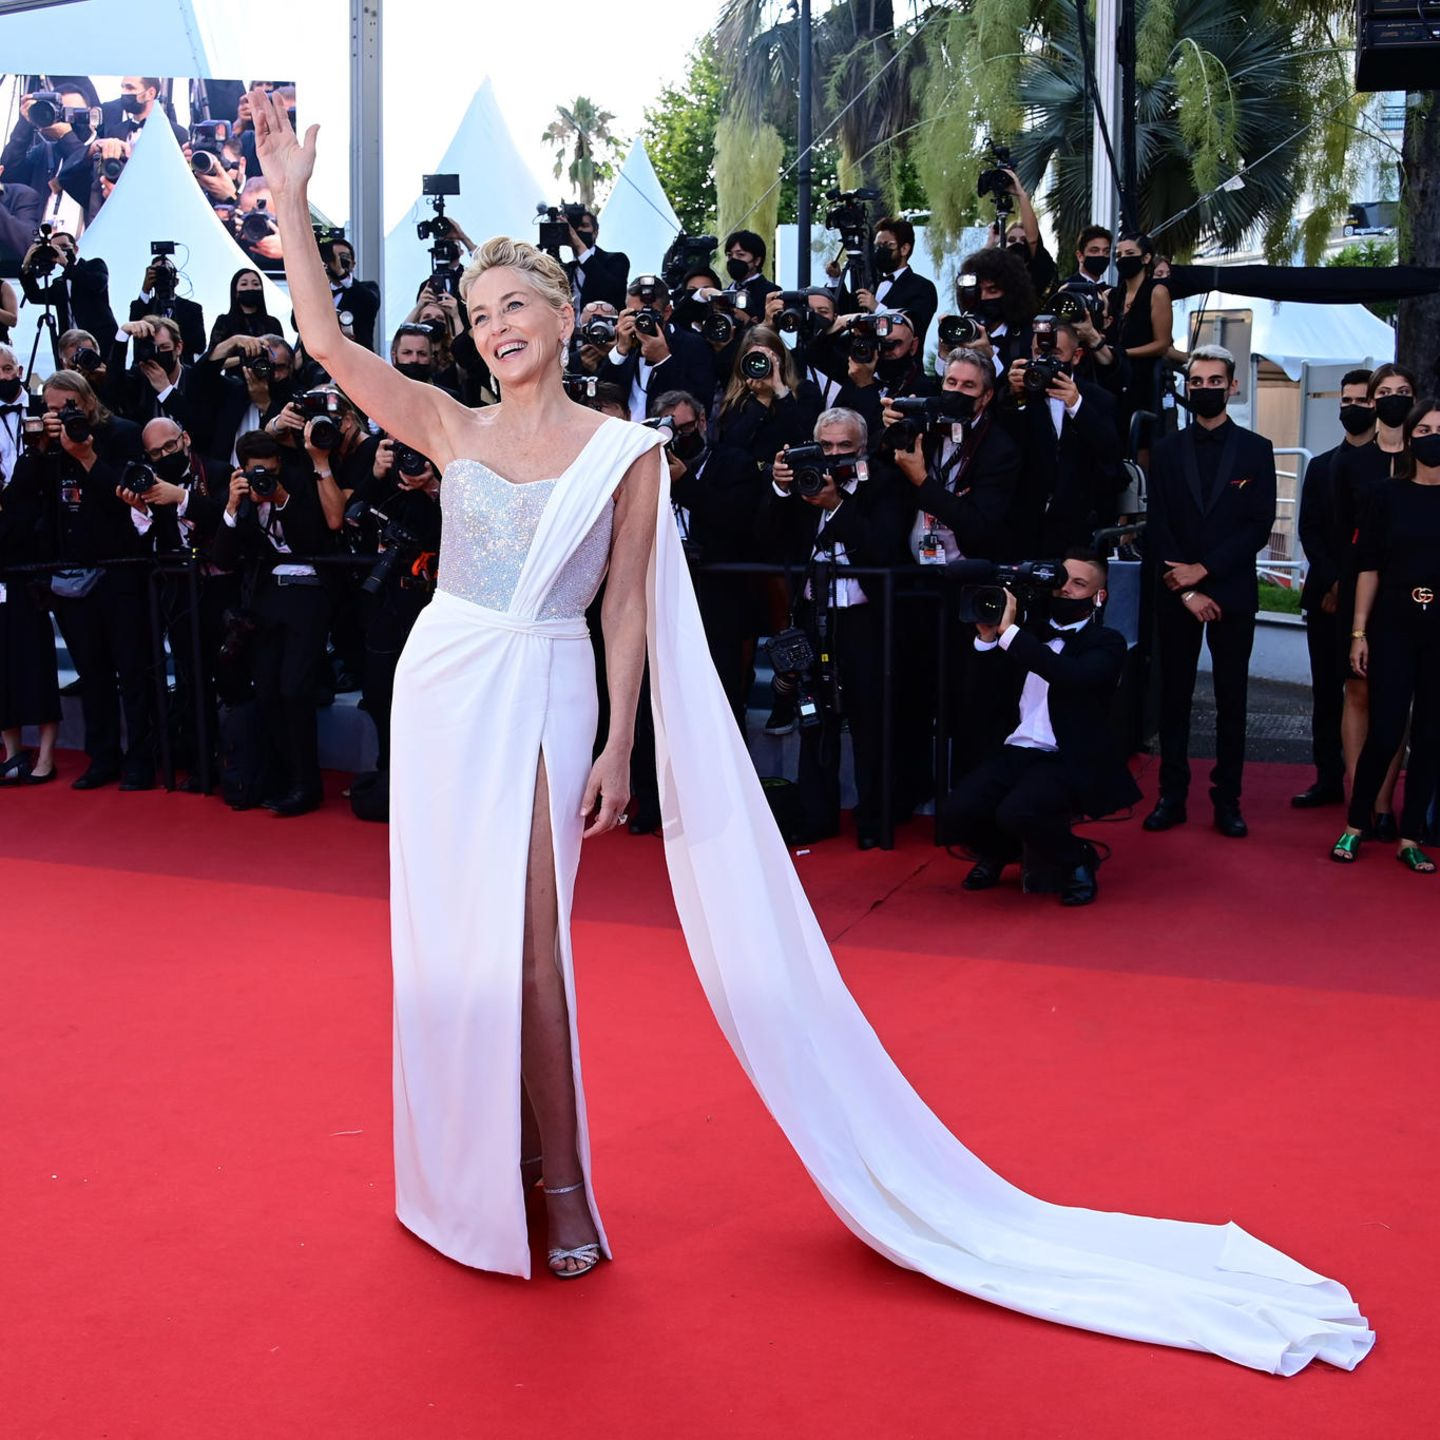 Sharon Stone in Cannes